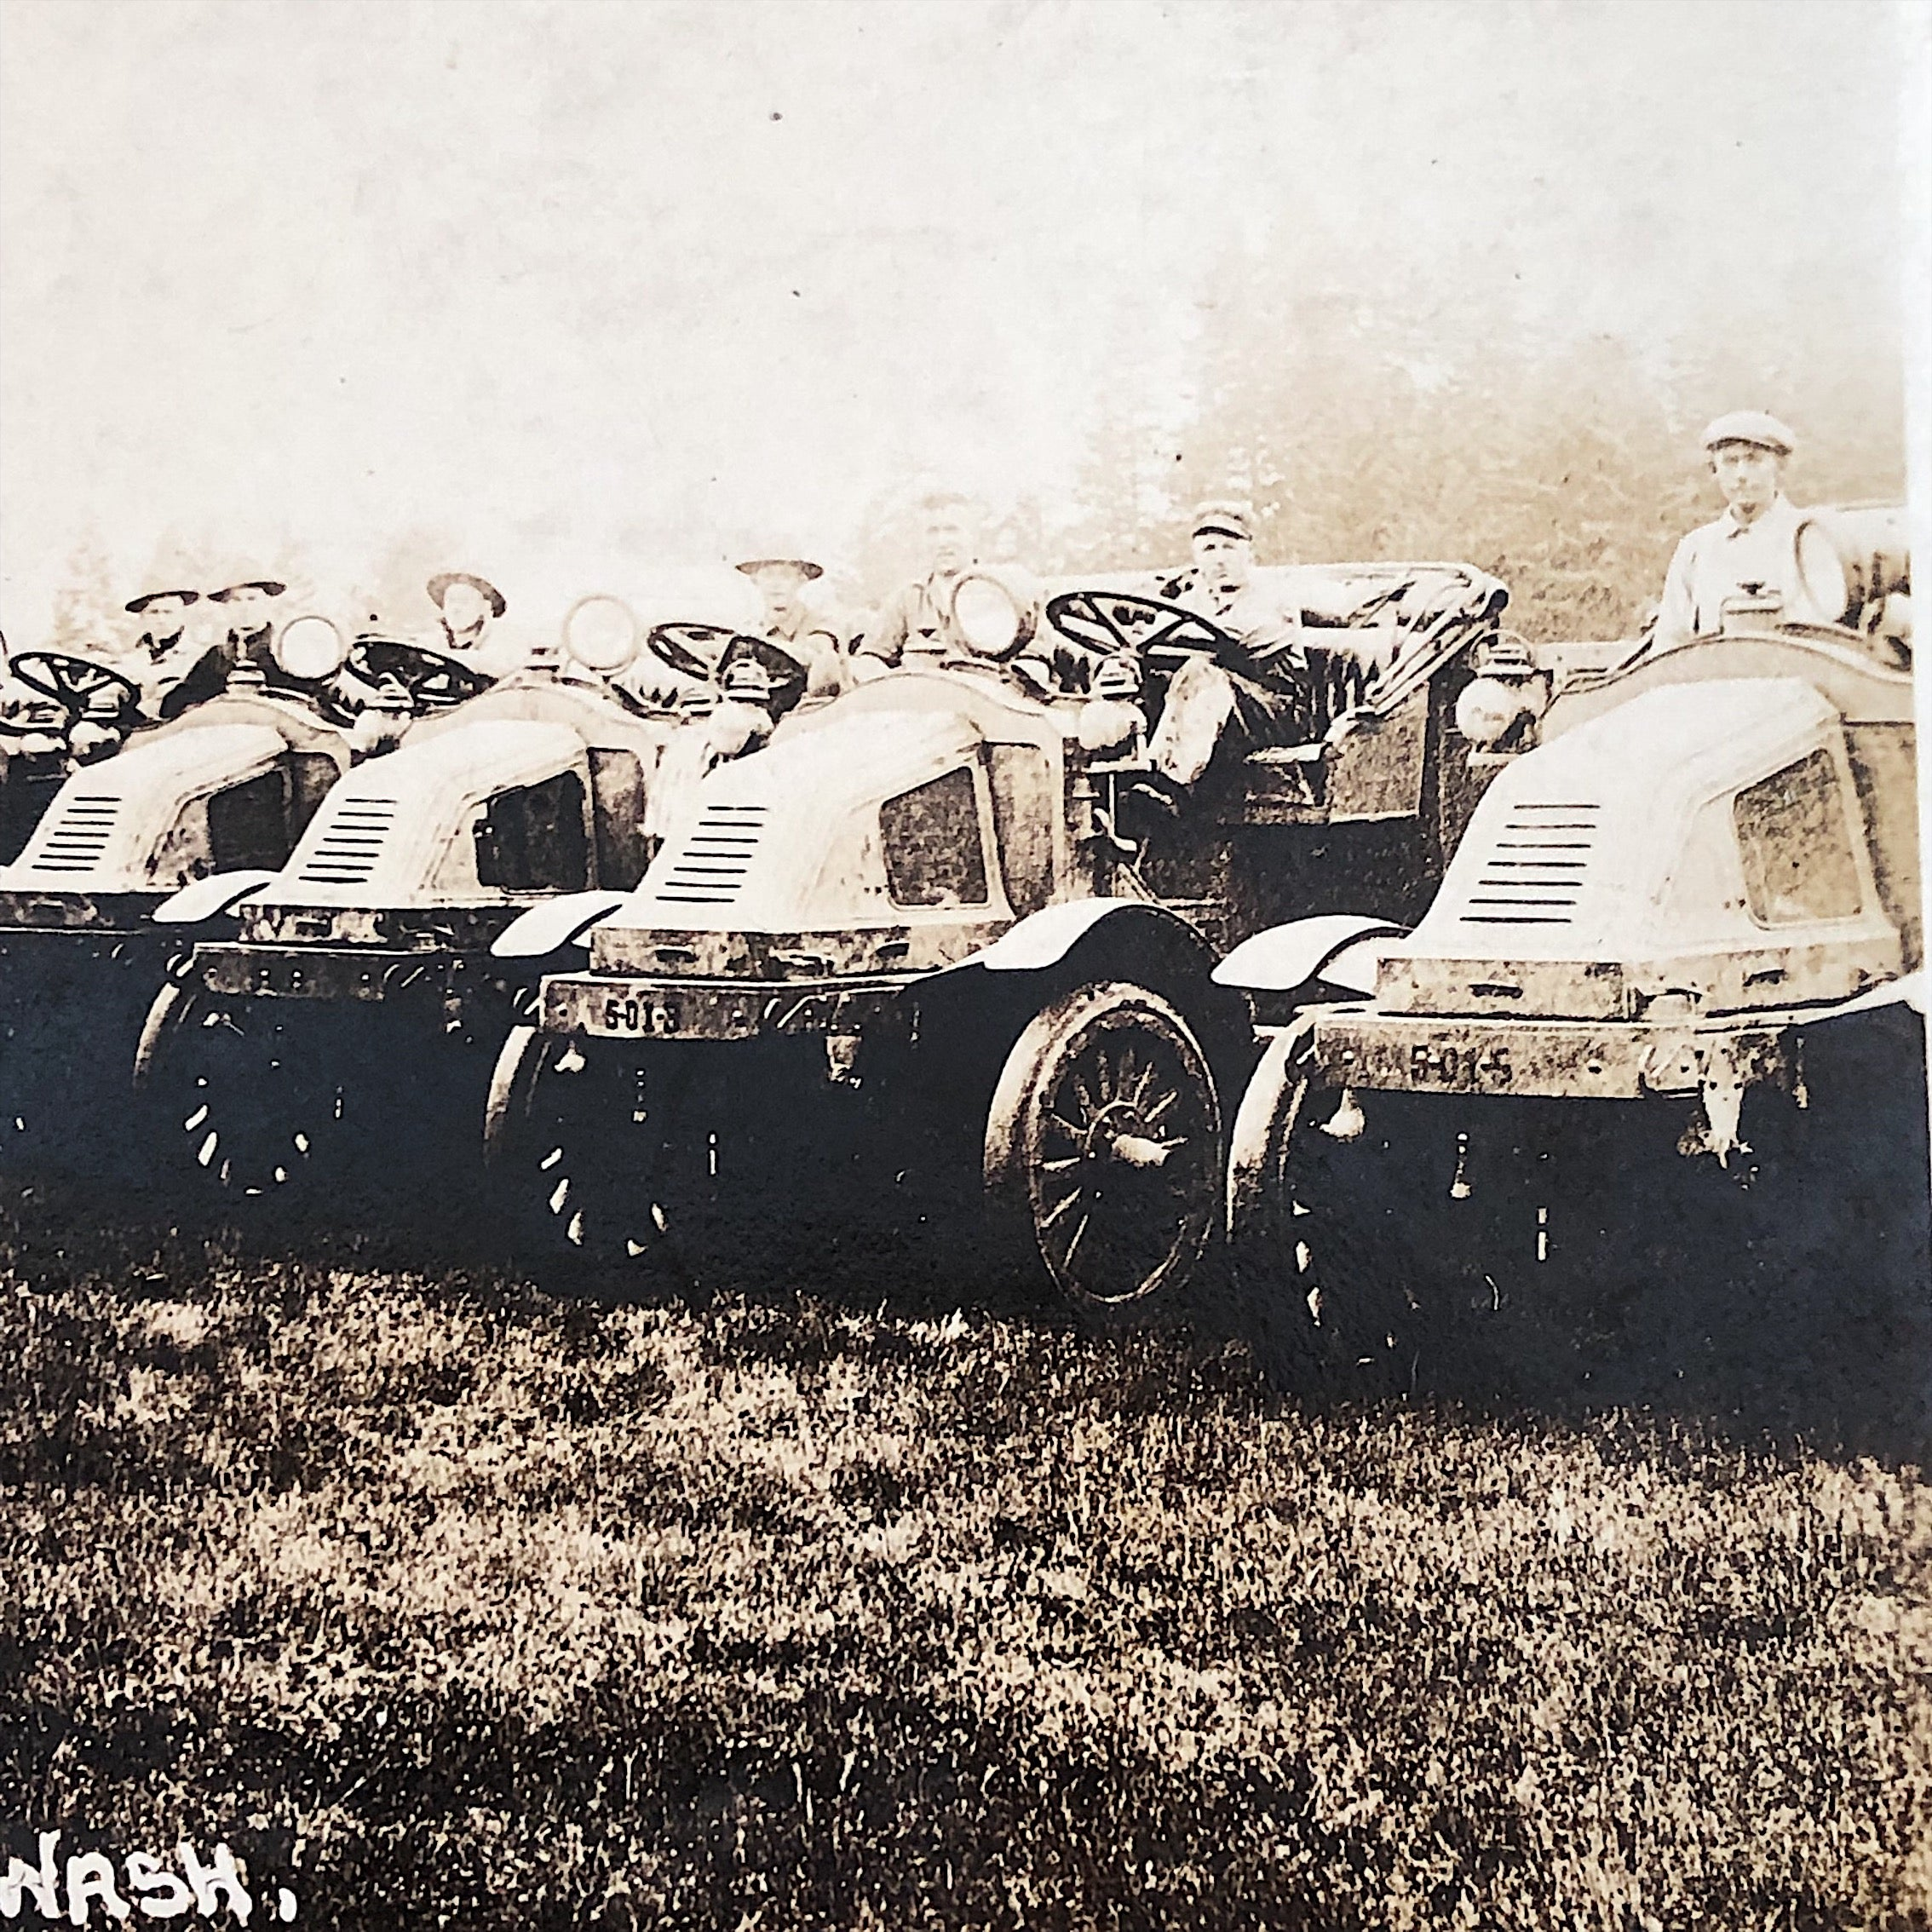 Antique WW1 Postcard of Army Trucks - Rare RPPC - American Lake Washington - Unused - Early Mack Kelly Springfield 3